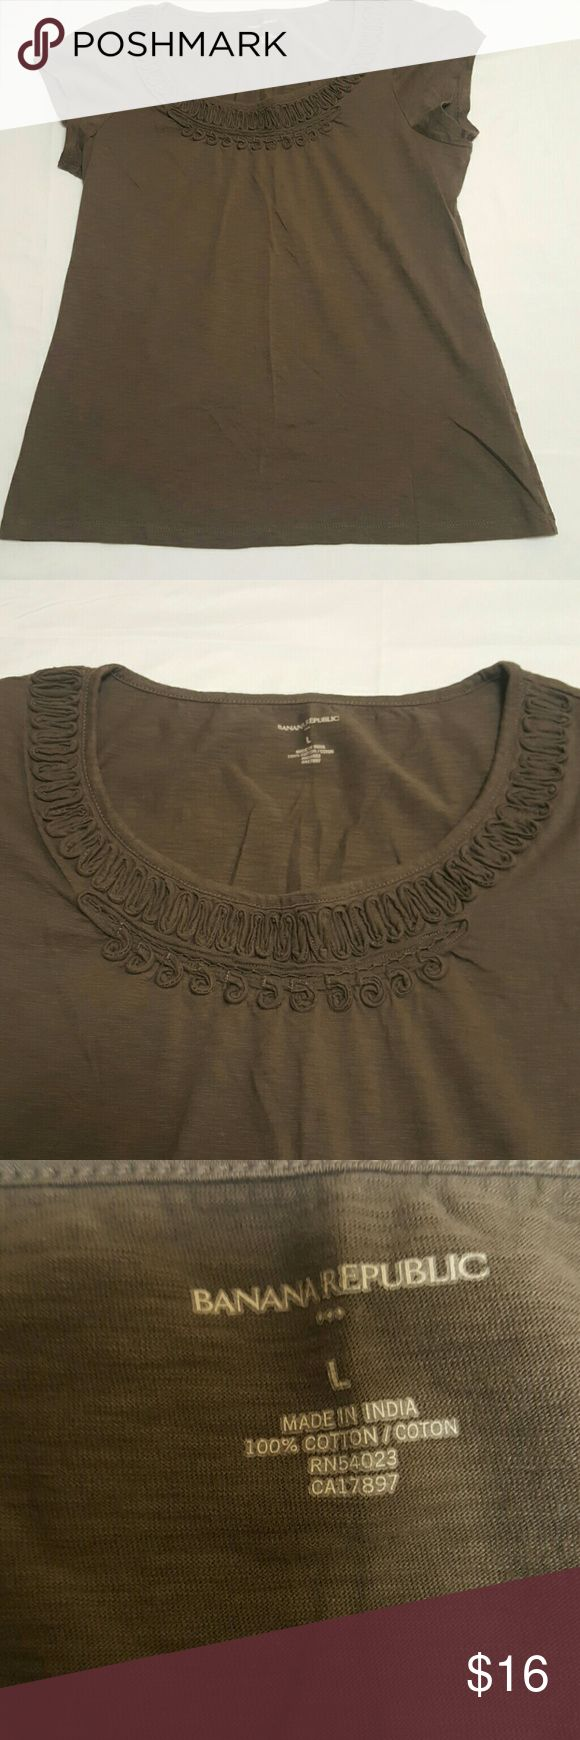 Banana Republic t-shirt Is a greyish color with almost-but-not-quite a greenish/brownish tint...Super cute. In nearly new condition Banana Republic Tops Tees - Short Sleeve